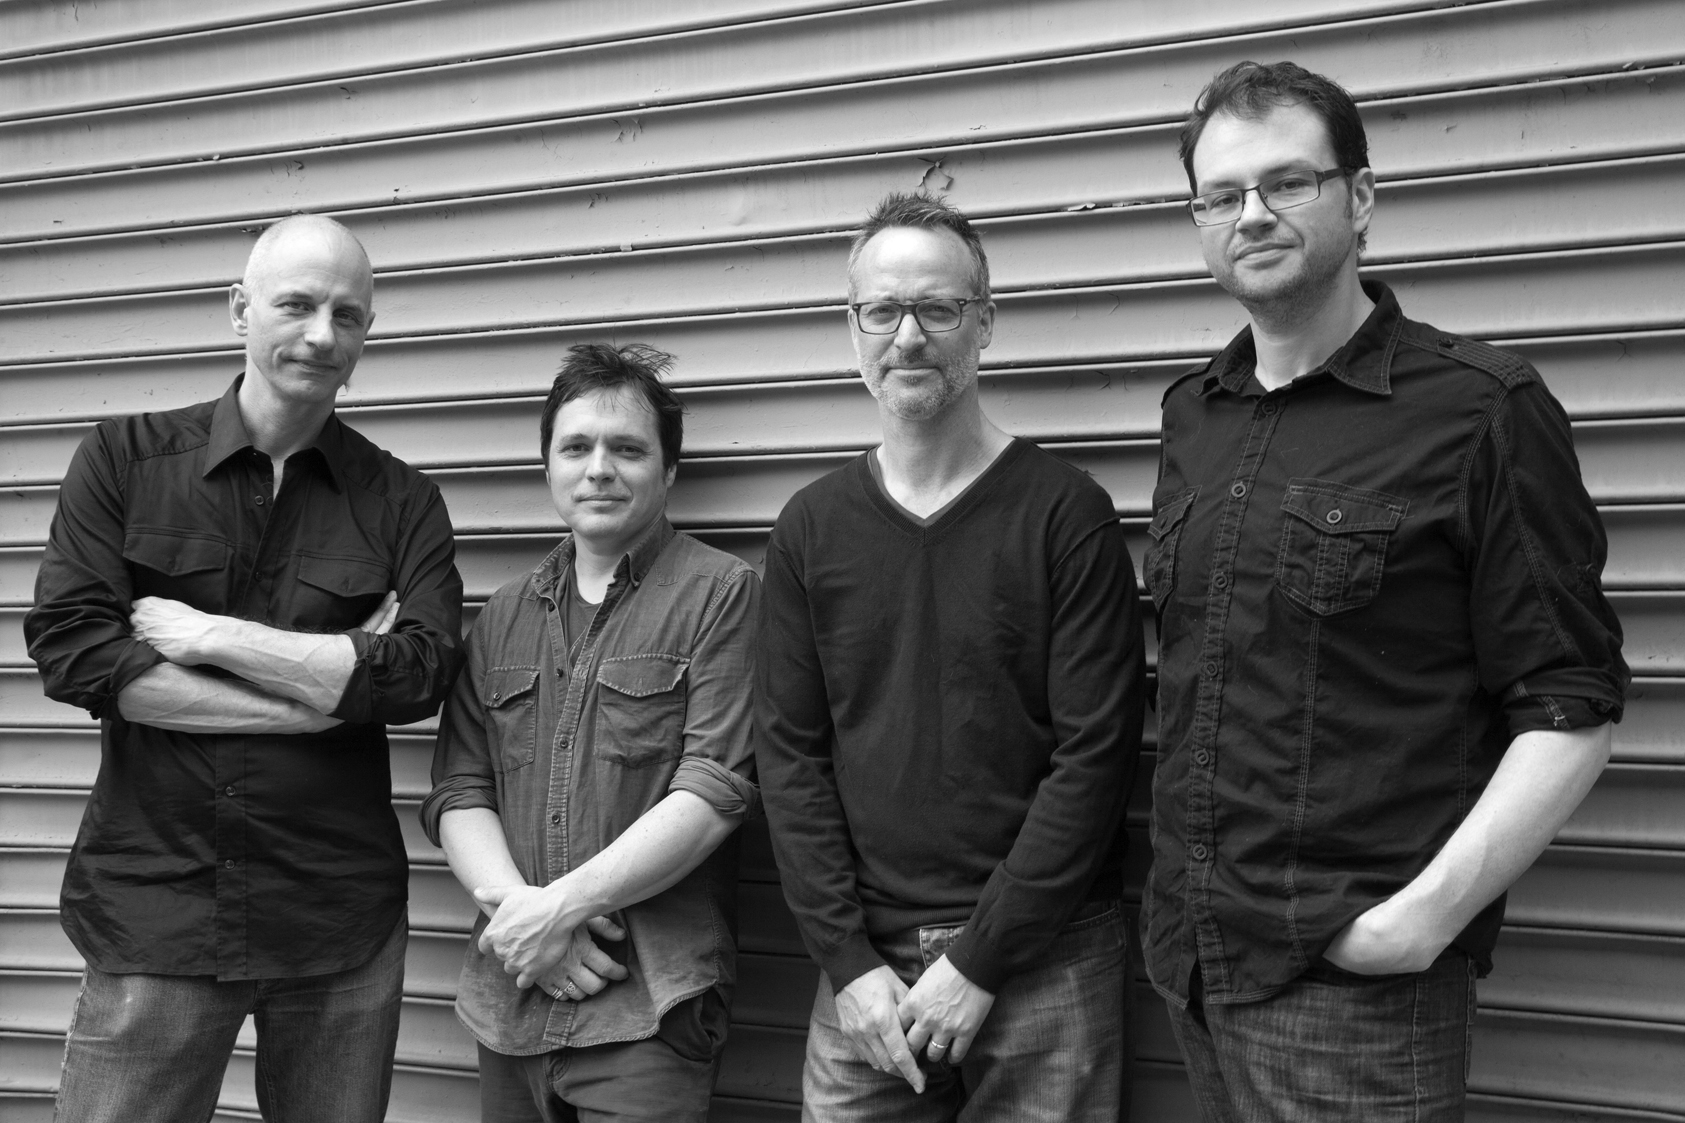 Bonebridge is: Erik Friedlander, cello; Doug Wamble, guitar; Trevor Dunn, bass; Michael Sarin, drums.